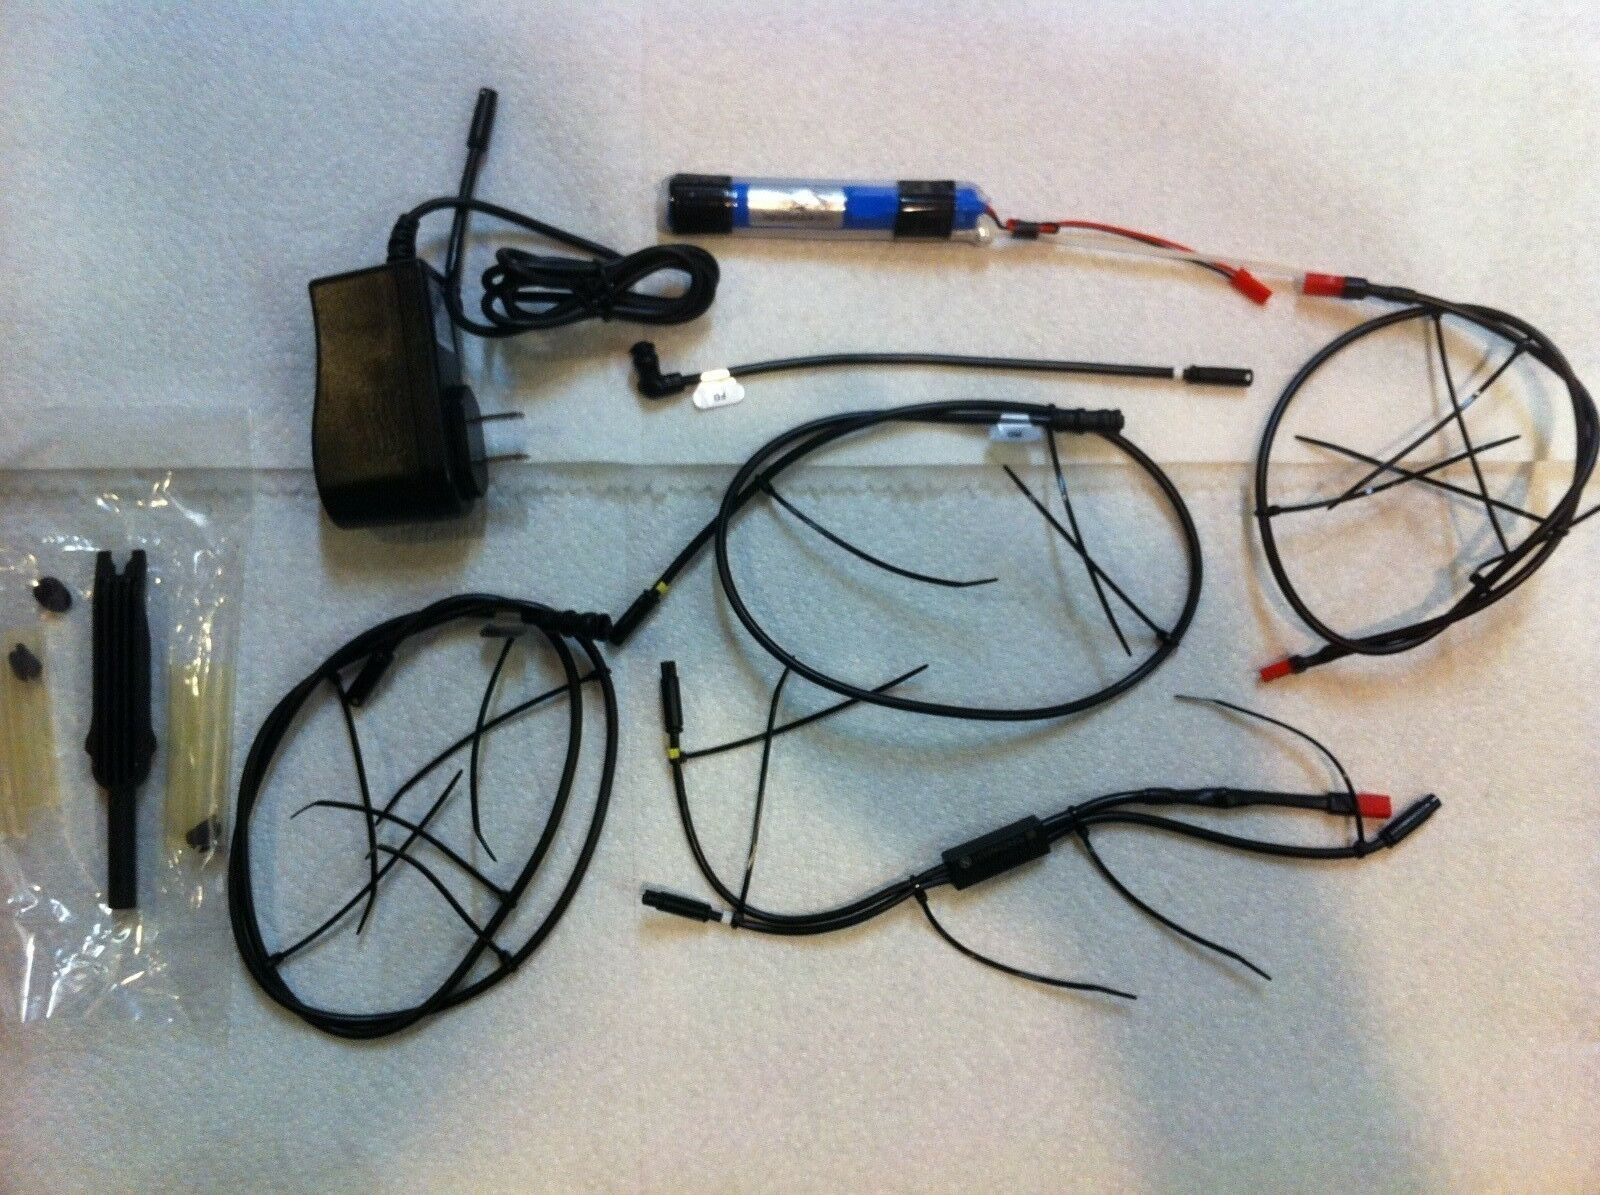 Shimano  Dura-Ace Di2 7970 EW-7975 Modified Internal Wiring Seat Post Battery Kit  clearance up to 70%